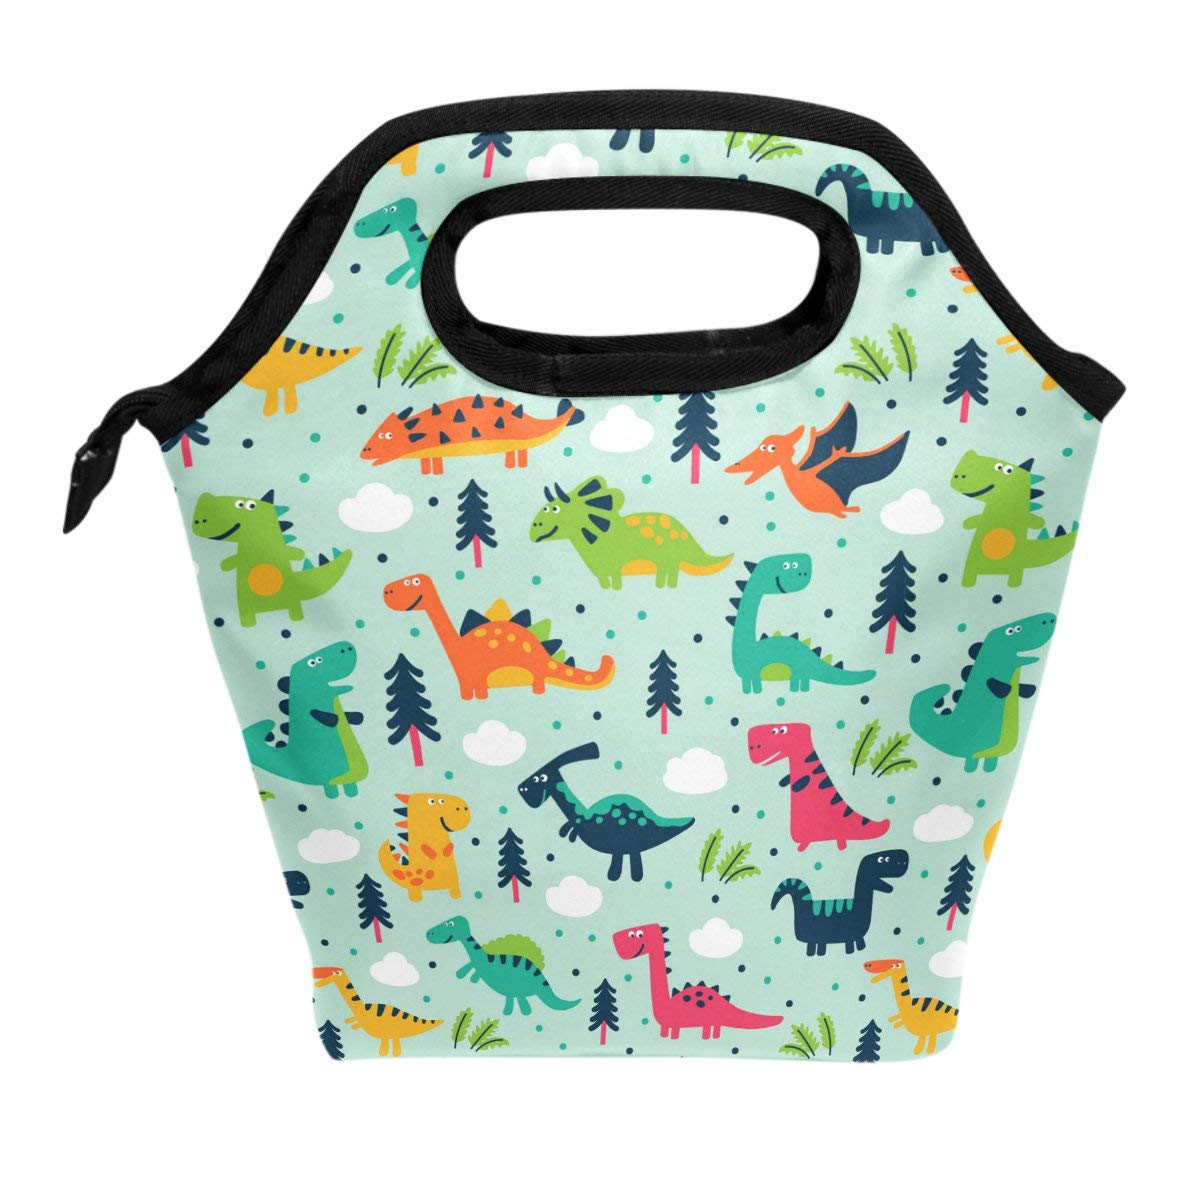 a40b3a87d92e Cheap Dinosaur Lunch Bag, find Dinosaur Lunch Bag deals on line at ...